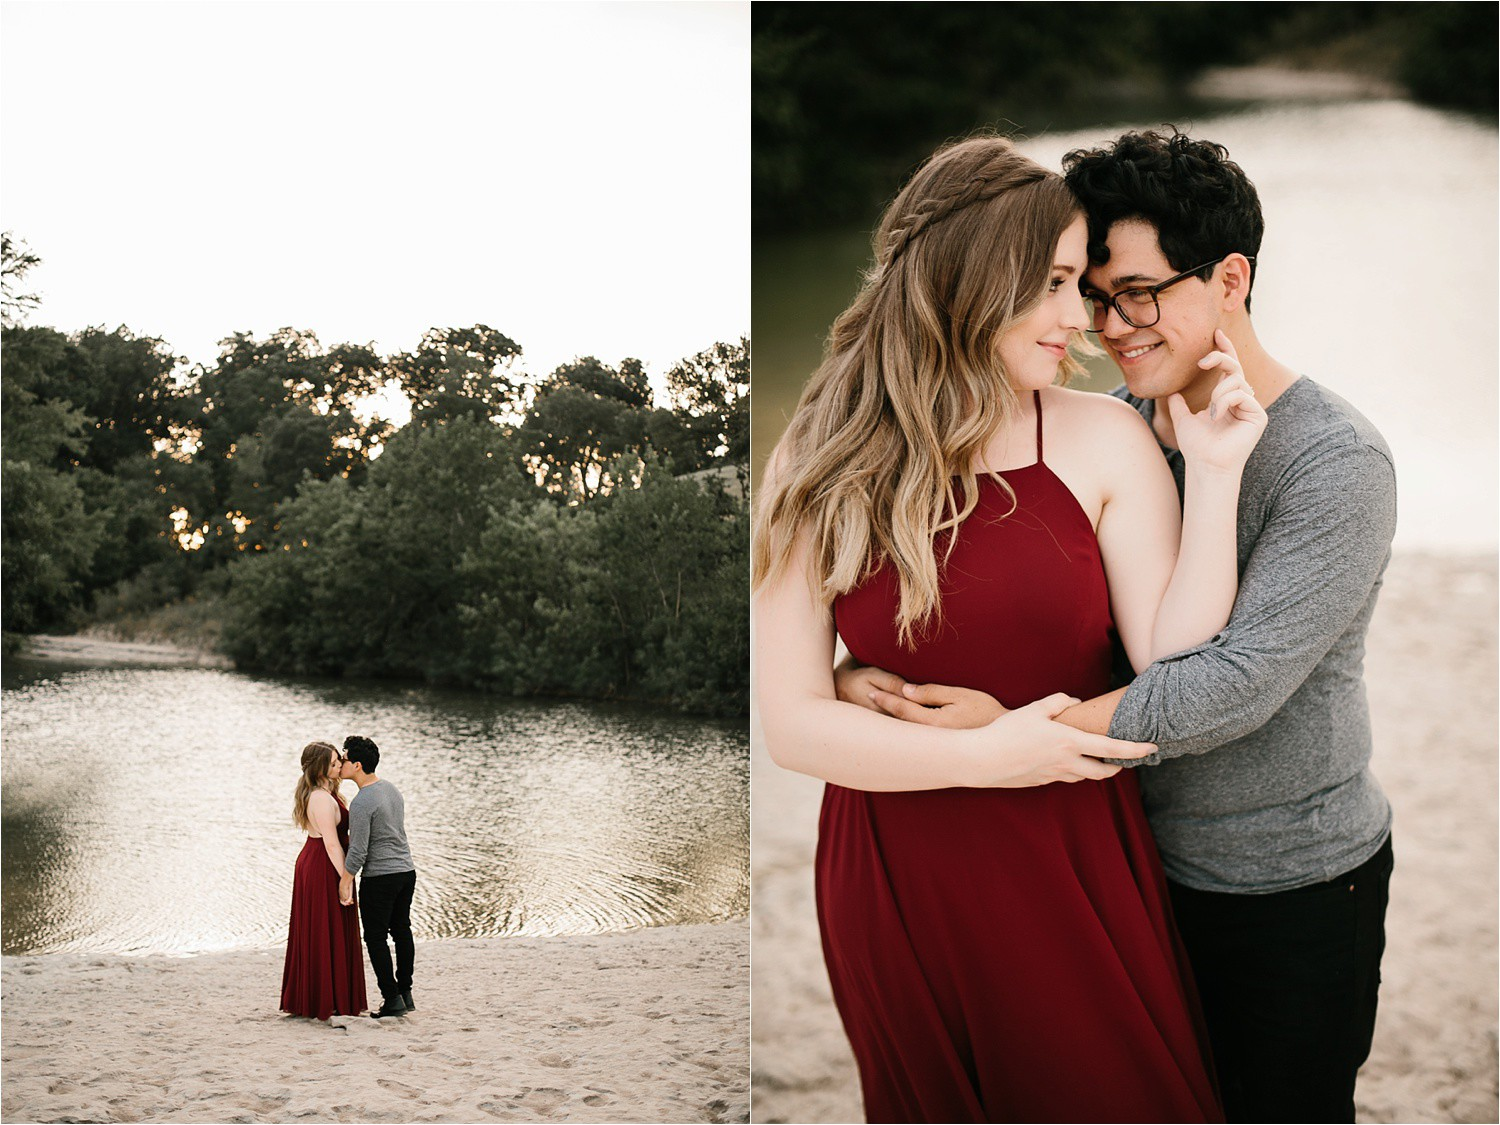 Romantic Austin, Texas Engagement Session with outfit inspiration + flowy red dress from Lulu's at Mckinney Falls State Park by North Texas Wedding Photographer, Rachel Meagan Photography __ 37